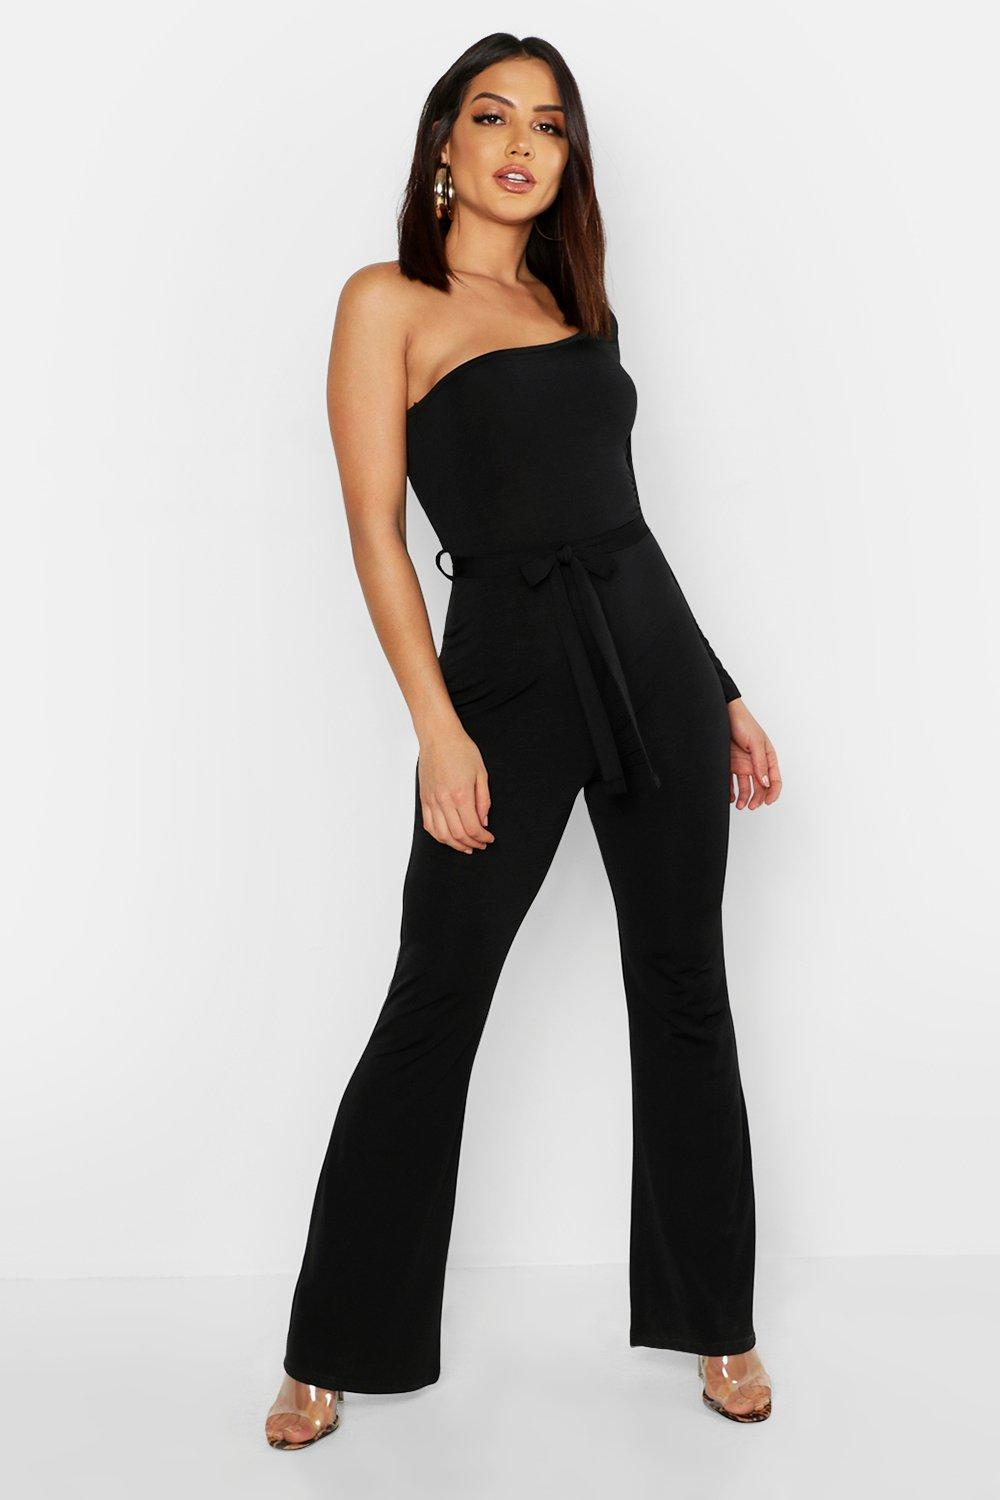 Slinky Long Sleeve One Shoulder Flare Jumpsuit